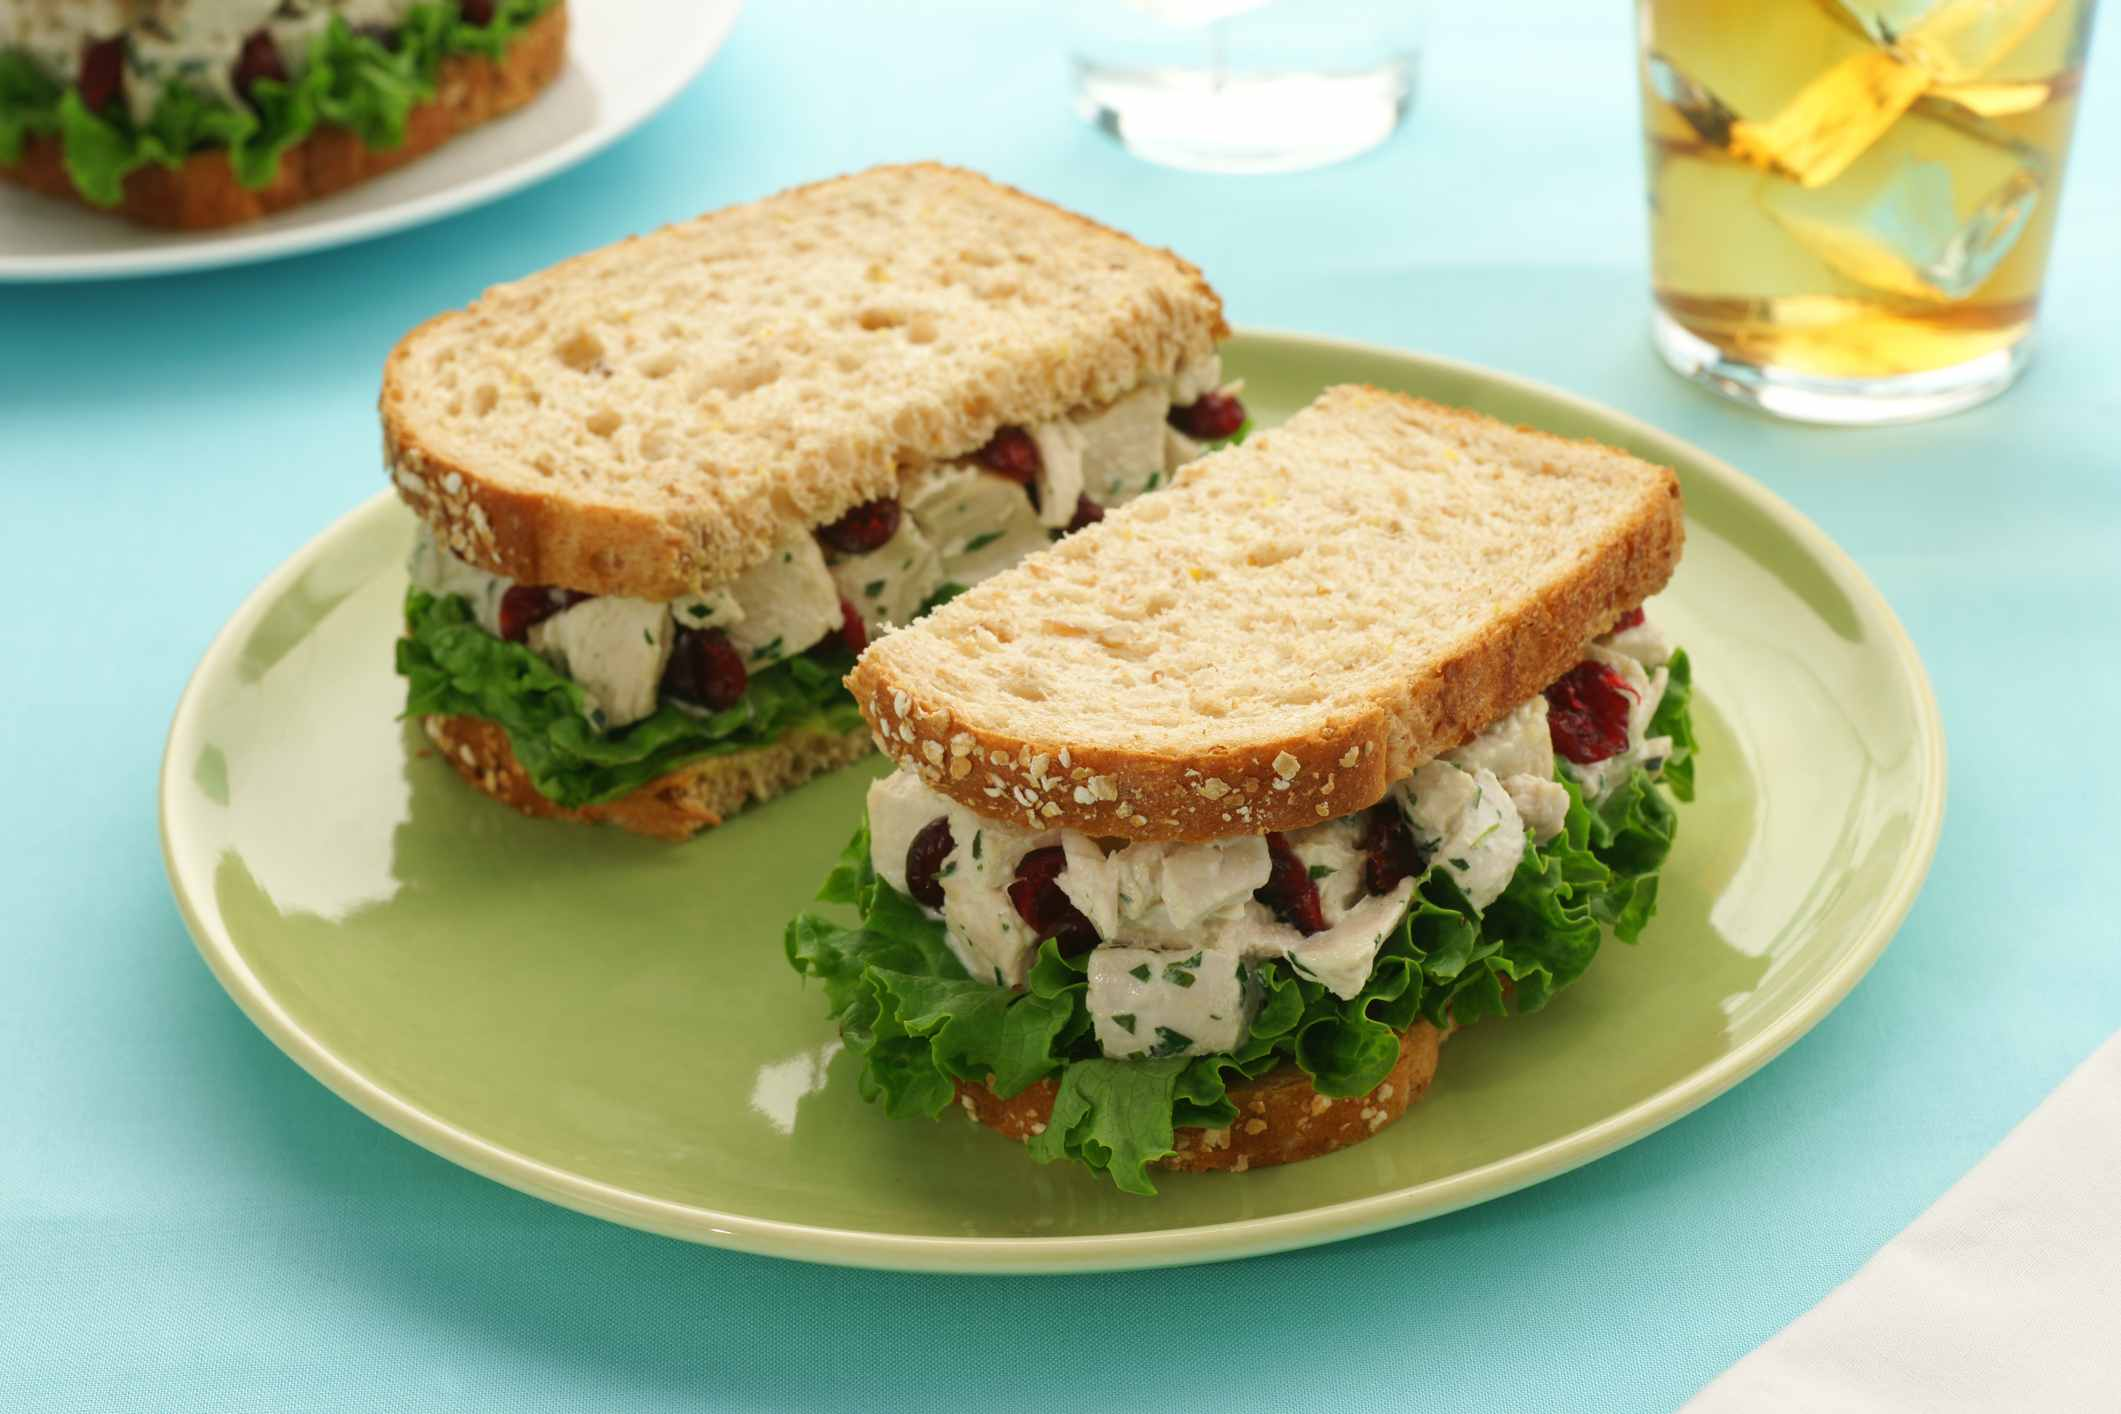 Chicken salad sandwich with cranberries and lettuce